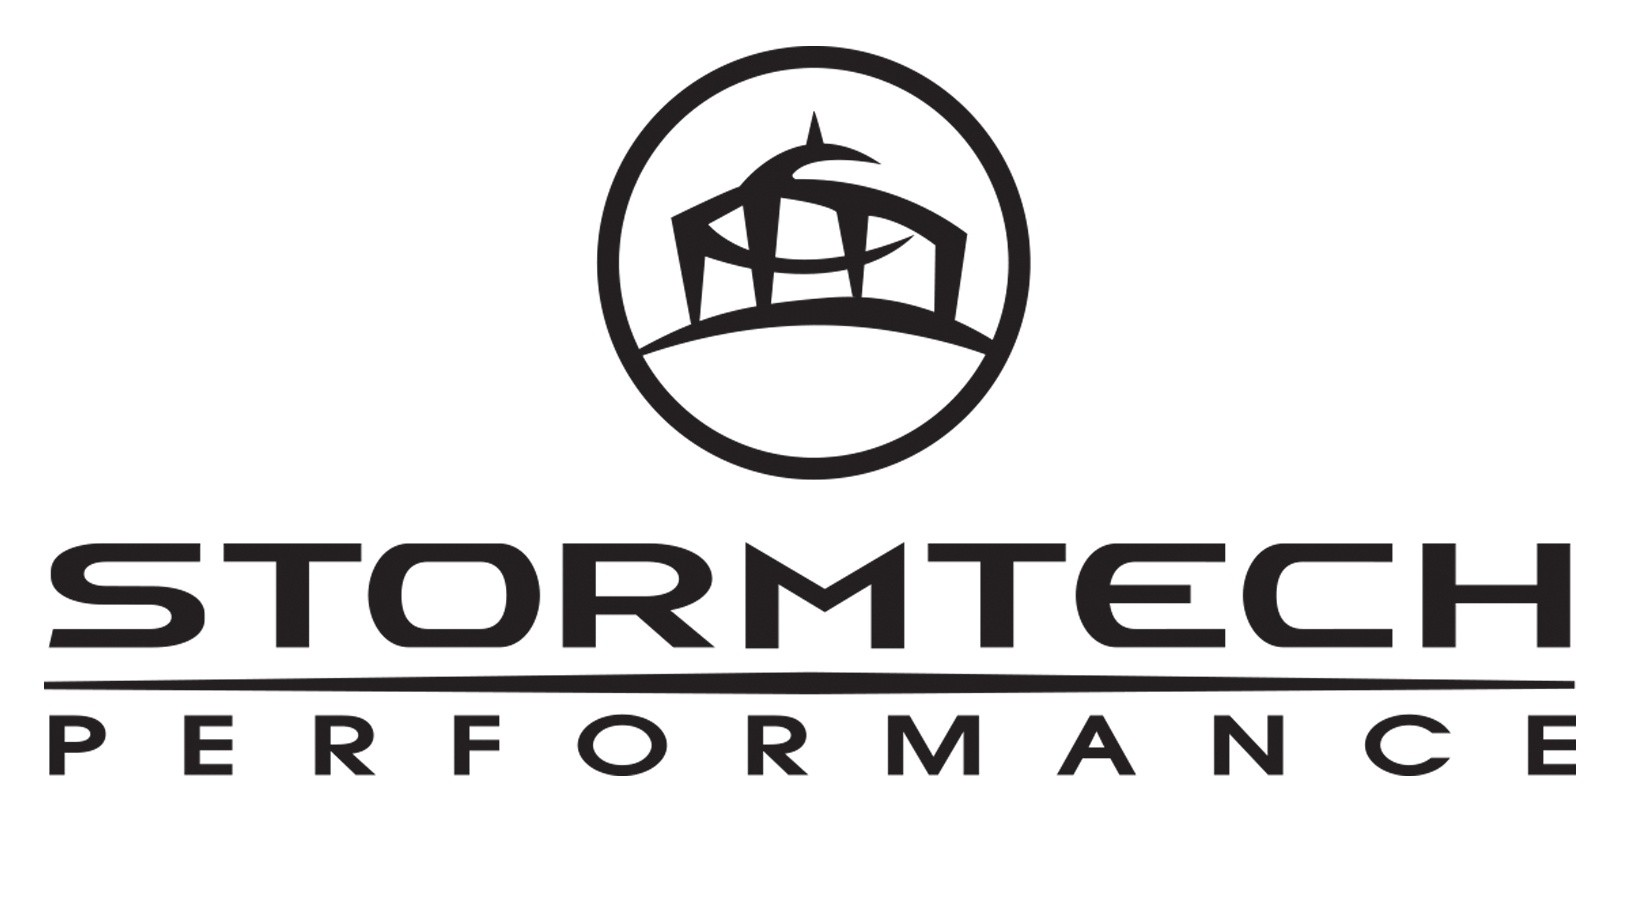 stormtechperformancelogo